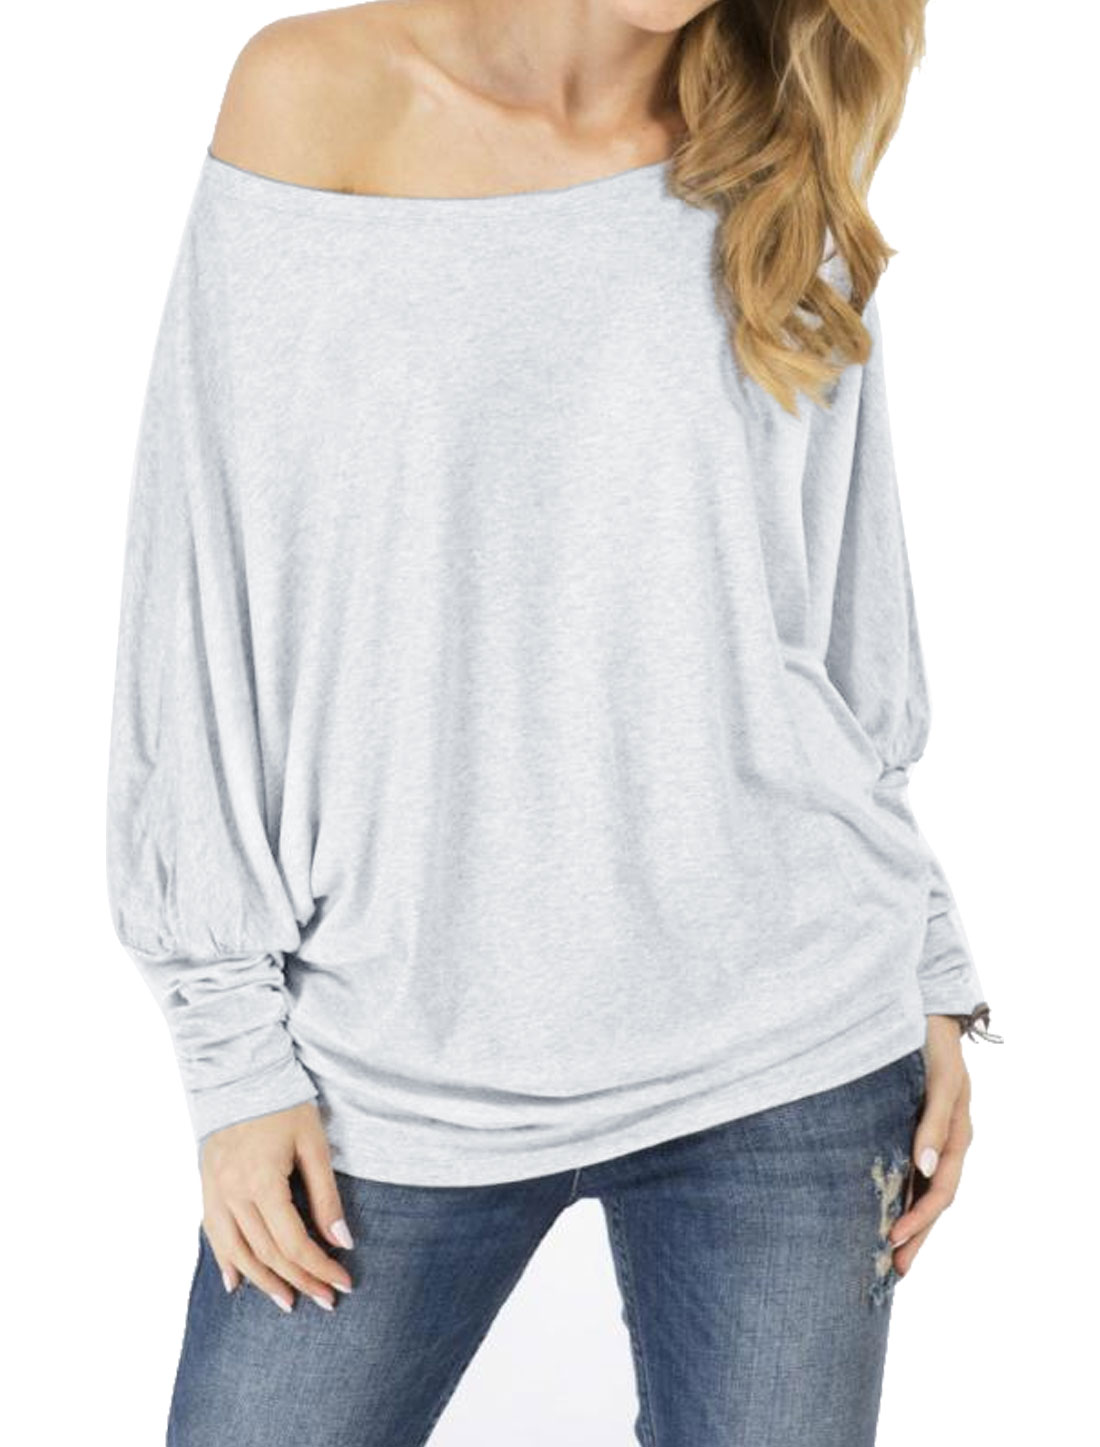 Women Boat Neck Batwing Sleeves Two Ways Wearing Blosues Gray S